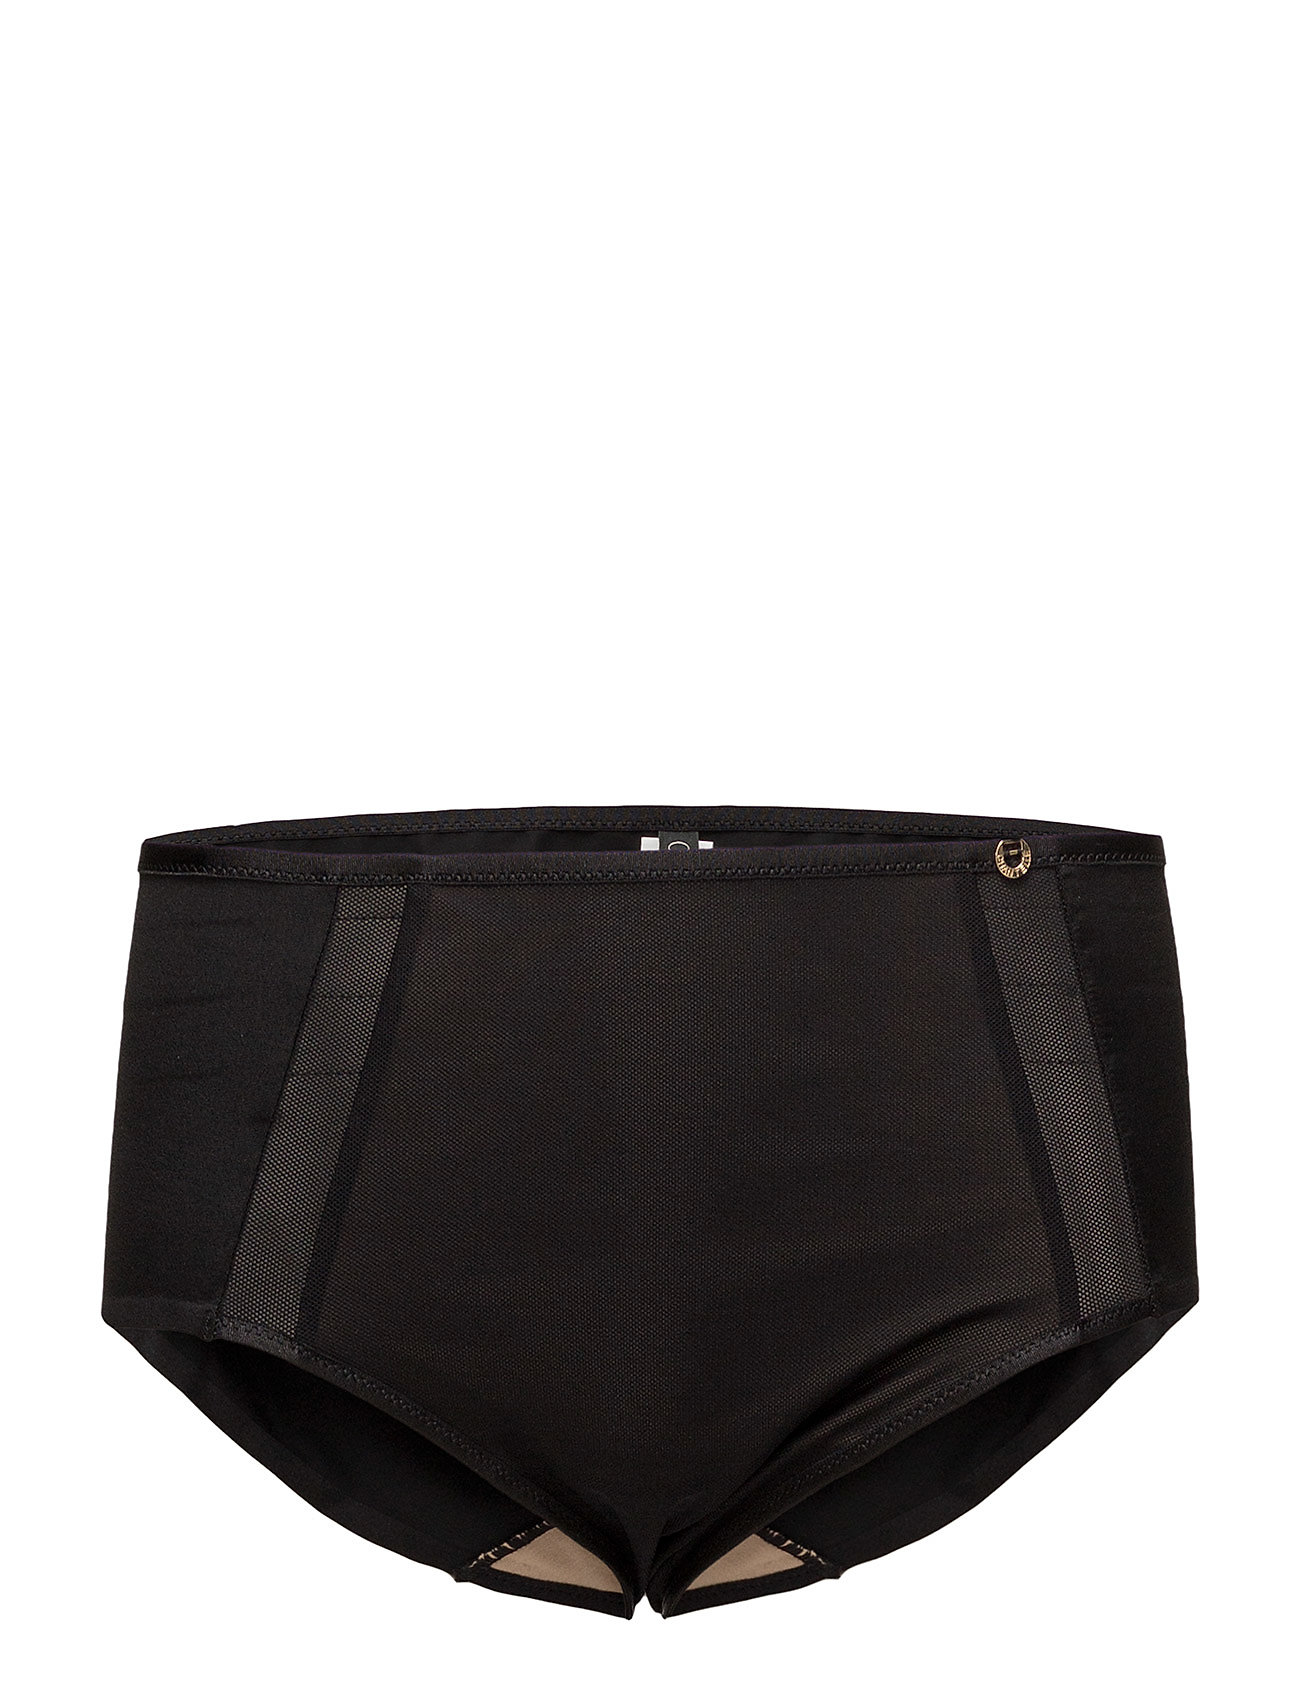 Full Co Bo SupportblackChantelle Bo Full Co Brief Brief nkwP0O8